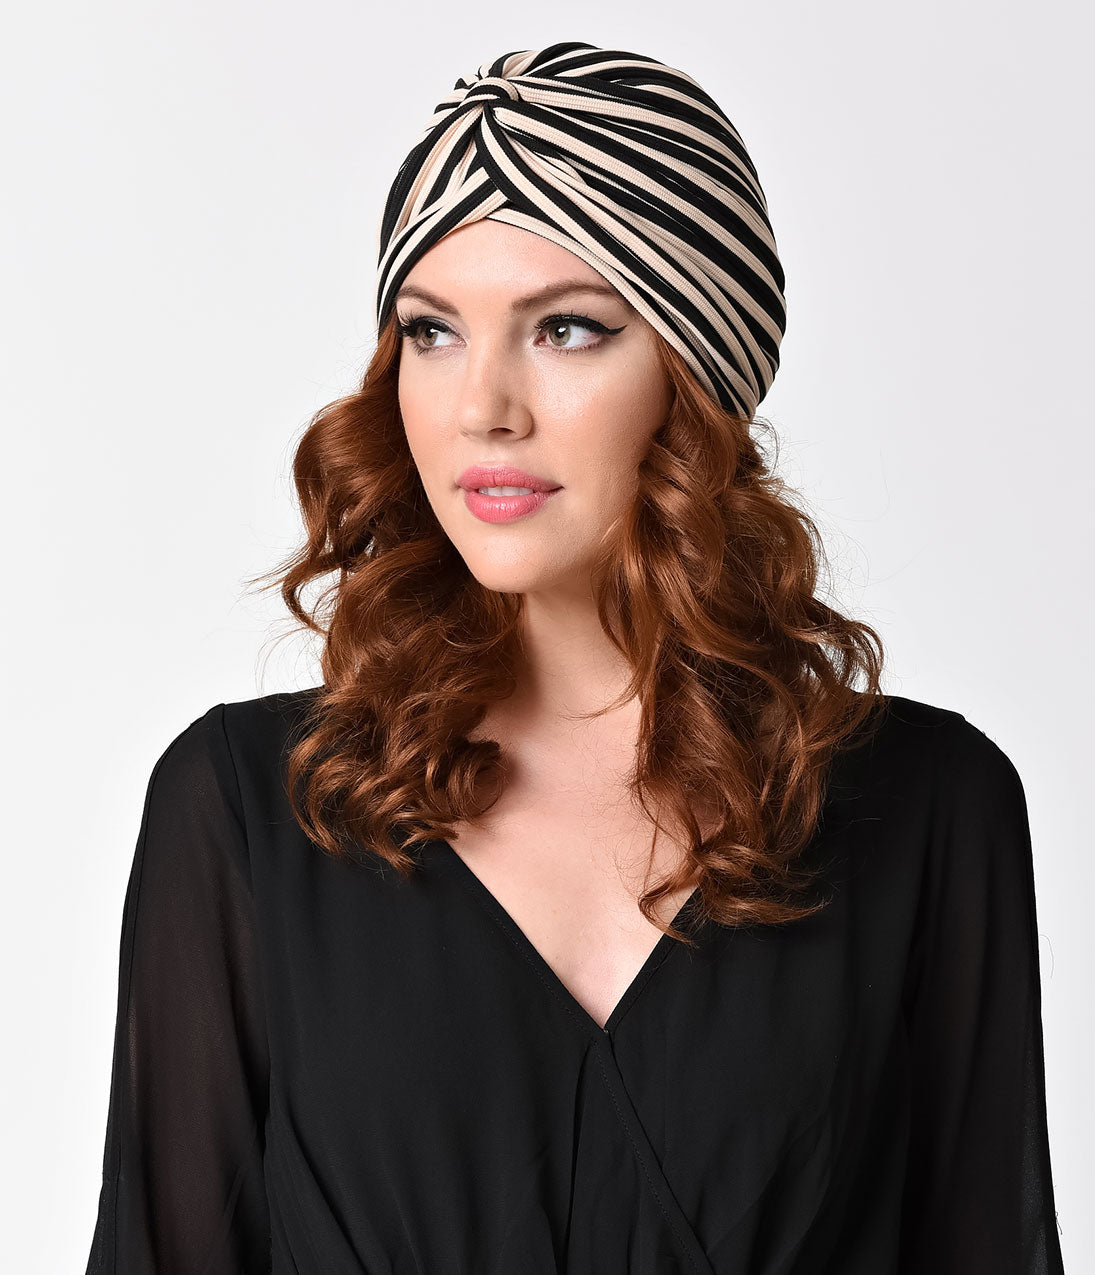 1920s Style Hats Vintage Syle Black  Tan Striped Knotted Turban $14.00 AT vintagedancer.com